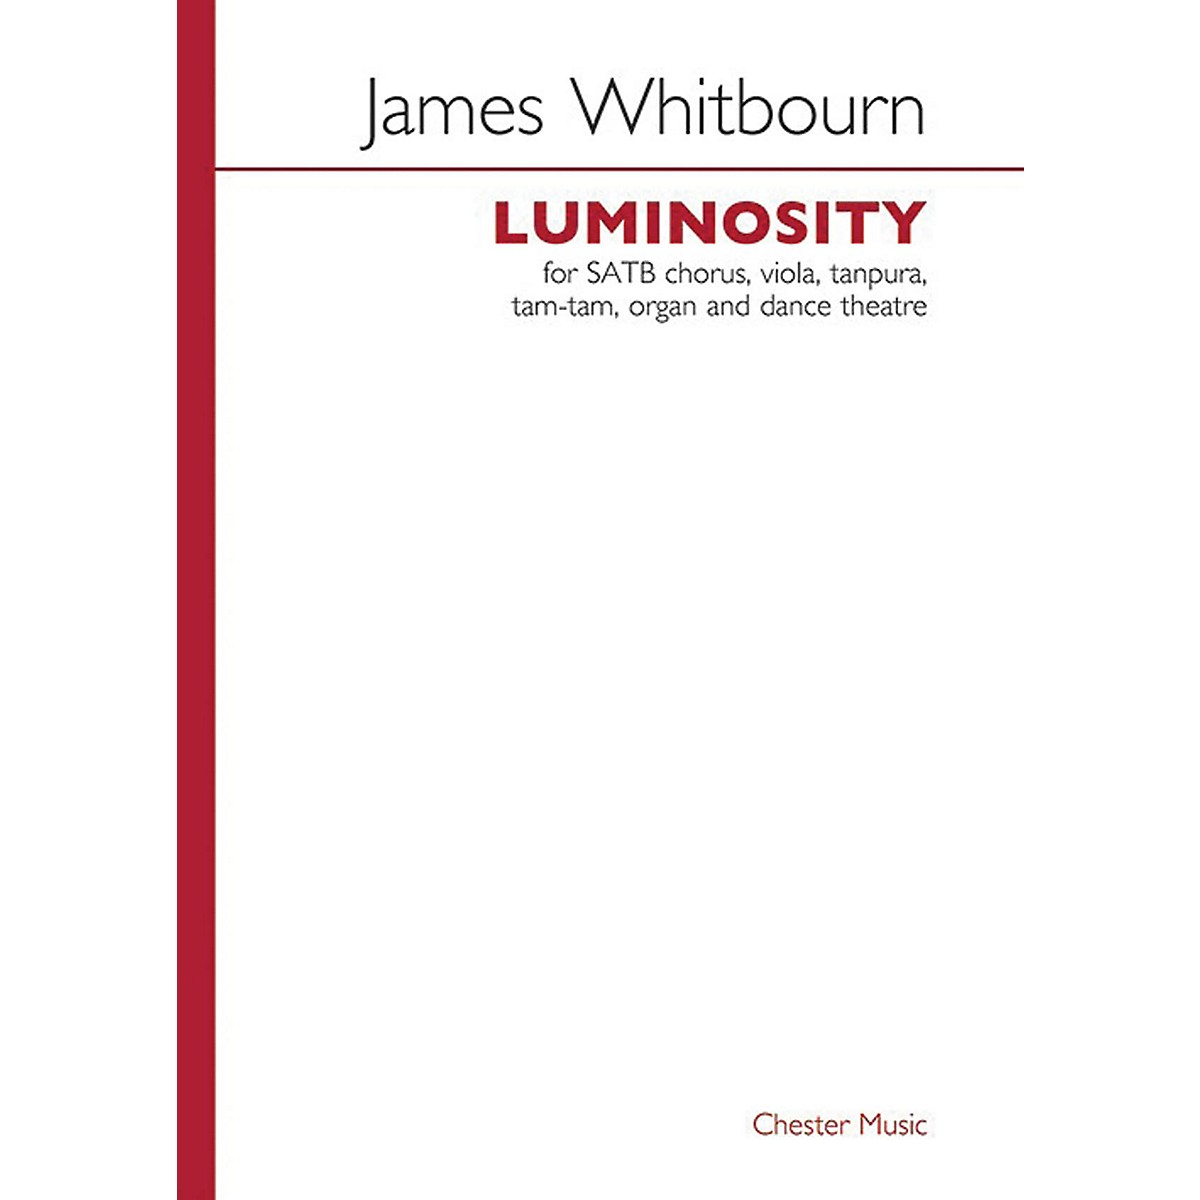 Chester Music Luminosity (SATB Chorus, Viola, Tanpura, Tam-tam, Organand dance theatre) Vocal Score by James Whitbourn